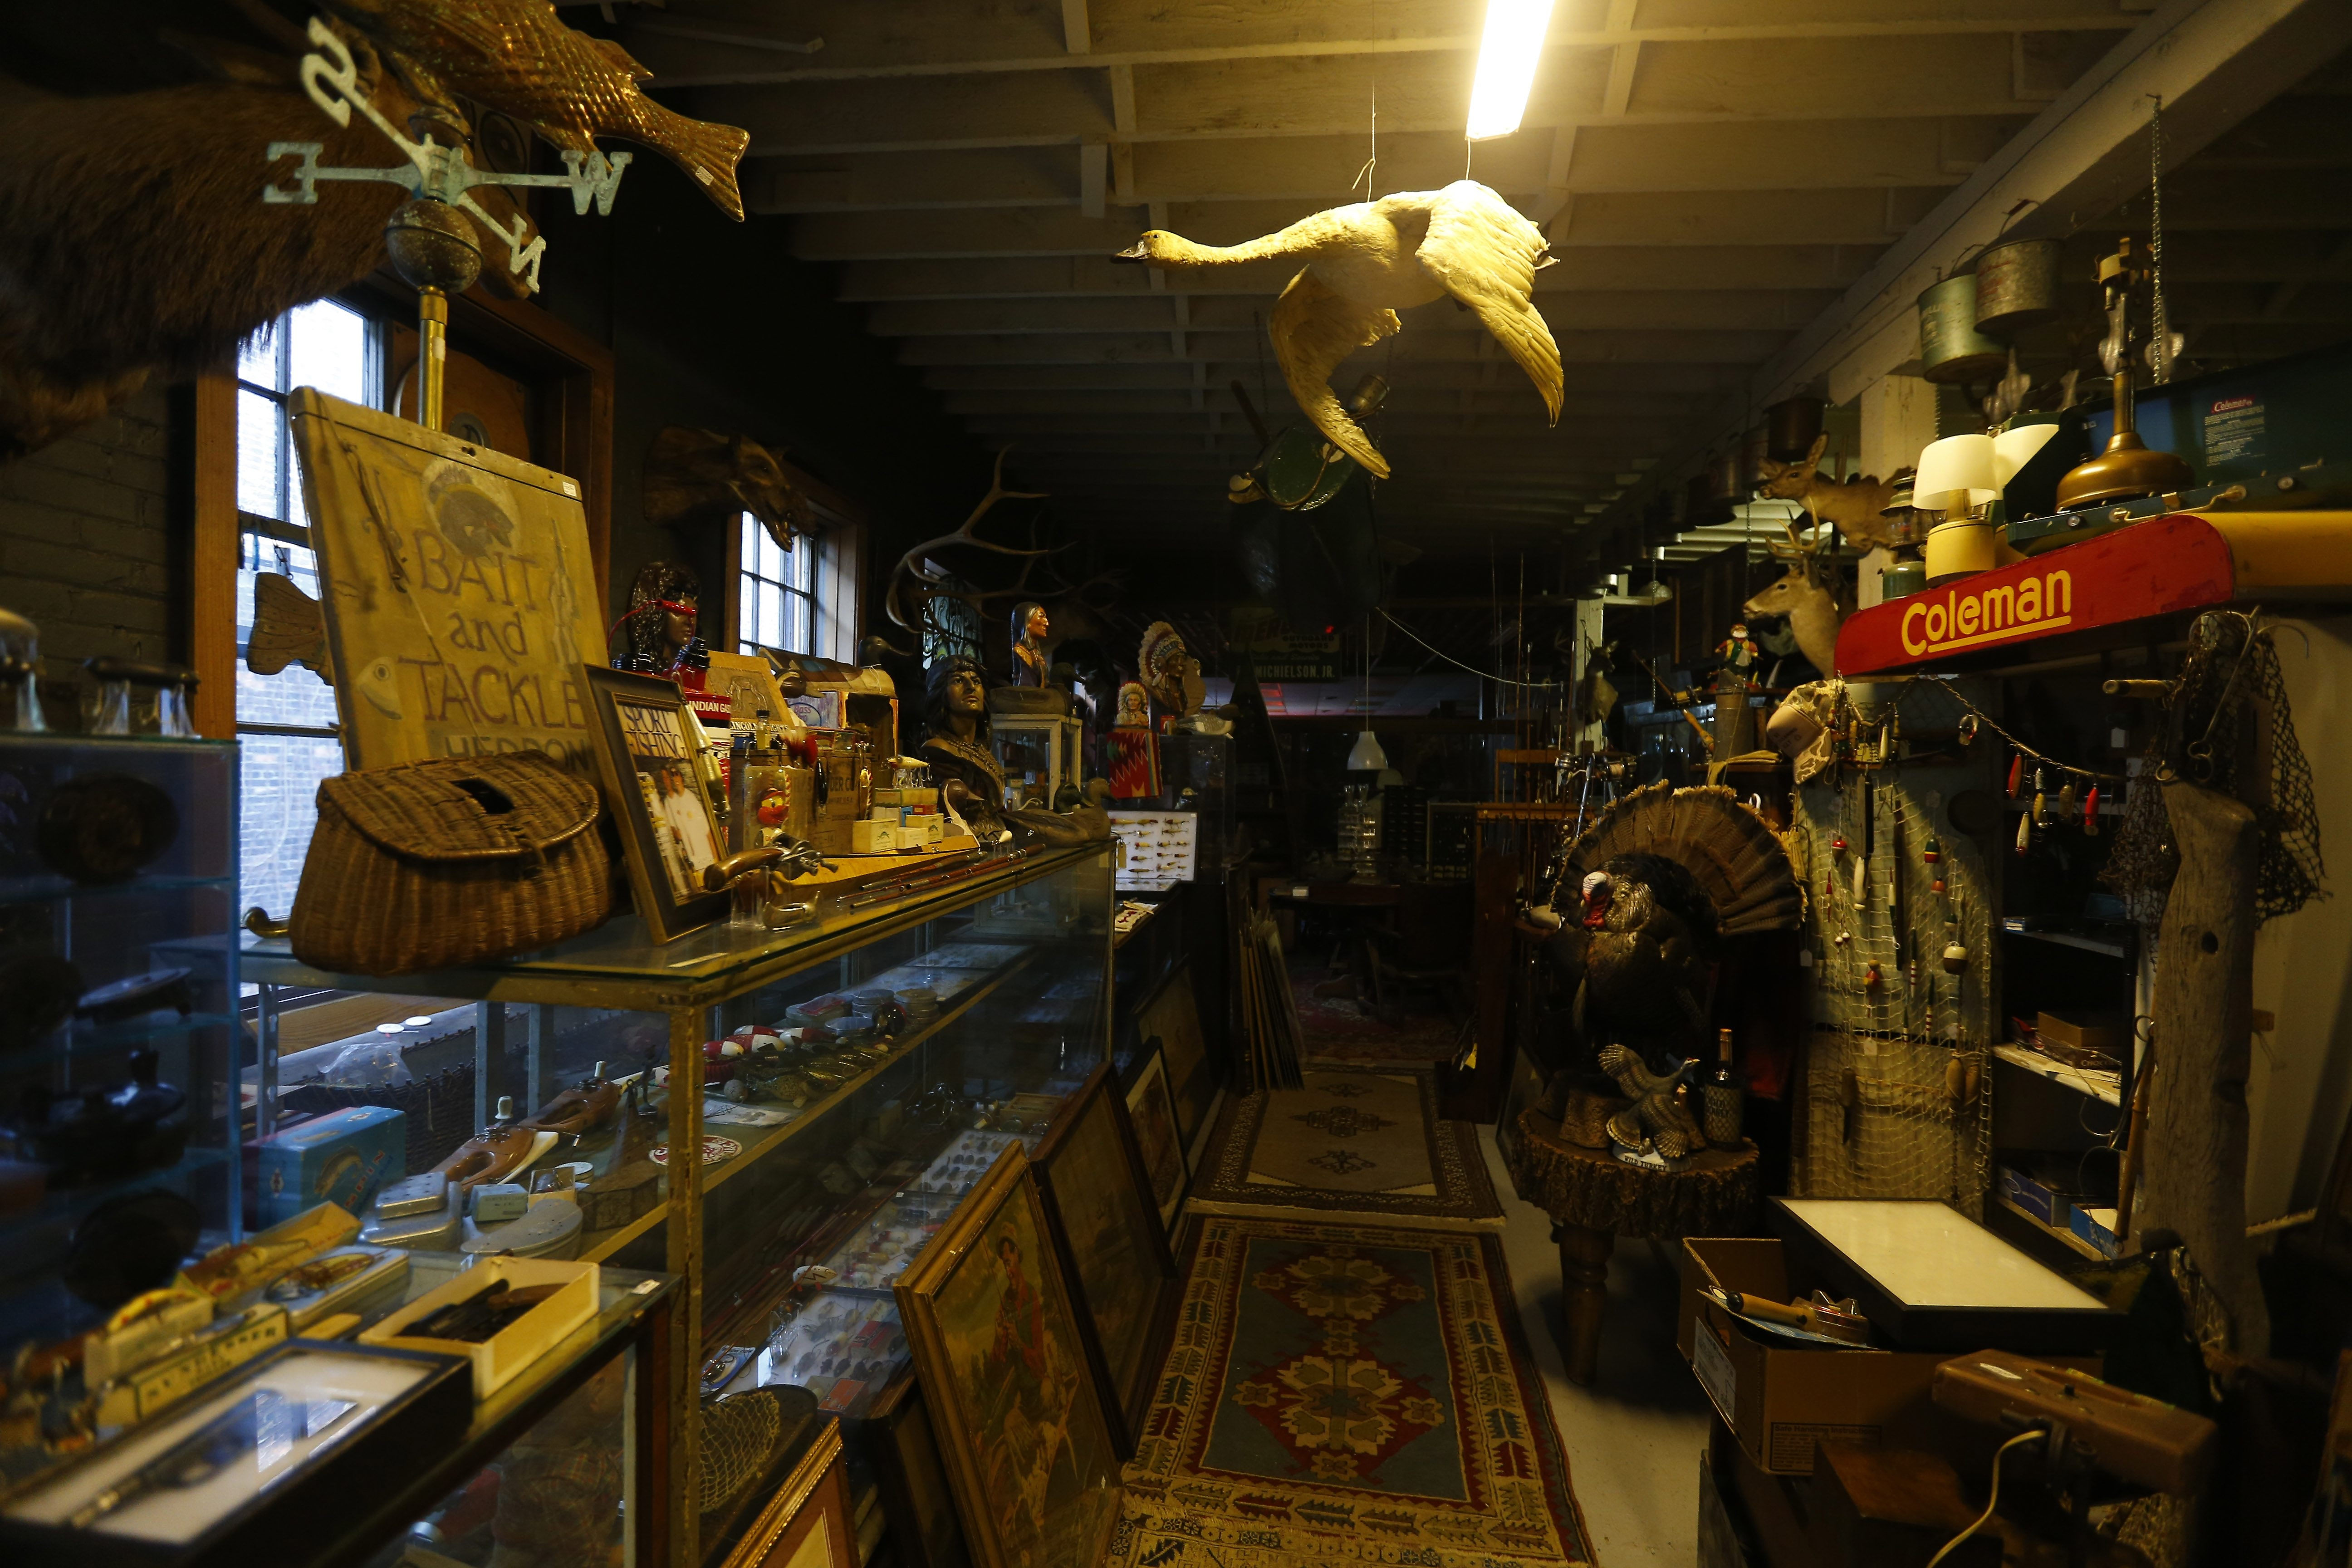 Some of the items offered at Horsefeathers Architectural Antiques and Hollwood Hank's in Buffalo. (Mark Mulville/Buffalo News)